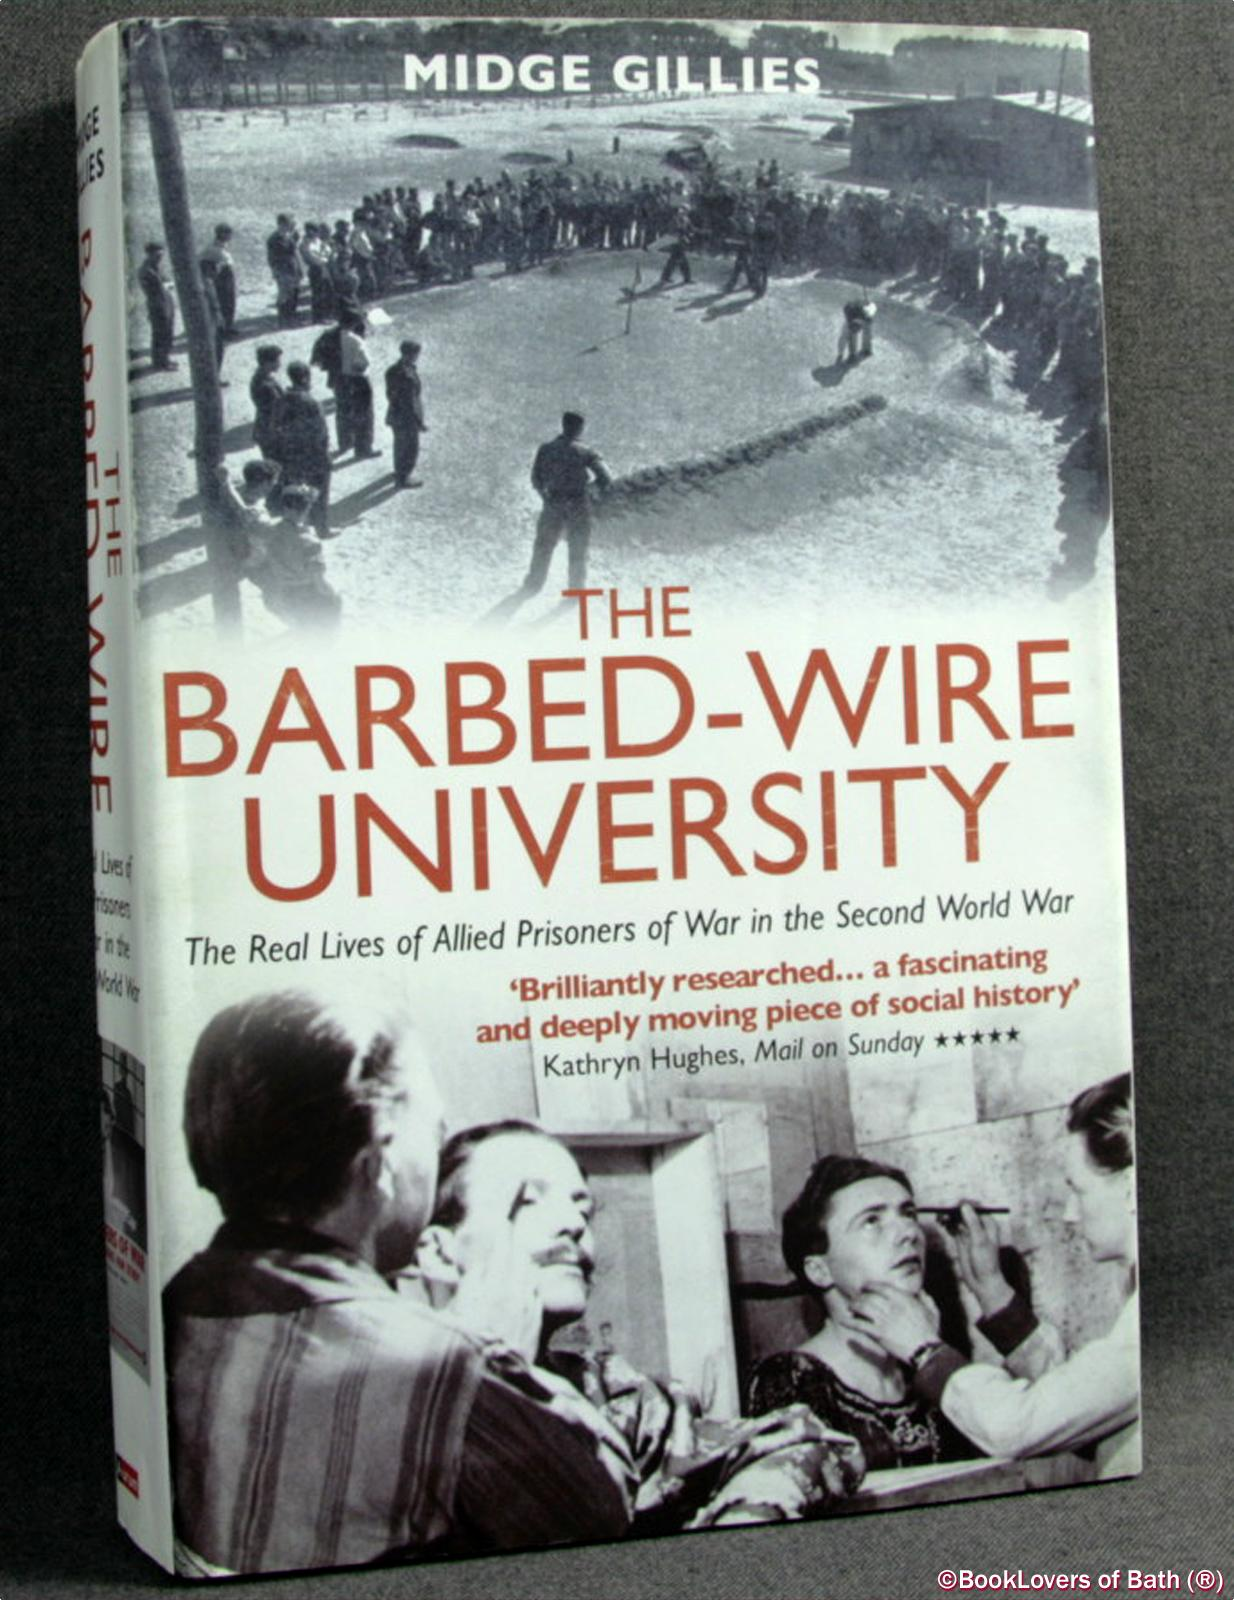 The Barbed-Wire University: The Real Lives of Prisoners of War in the Second World War - Midge Gillies